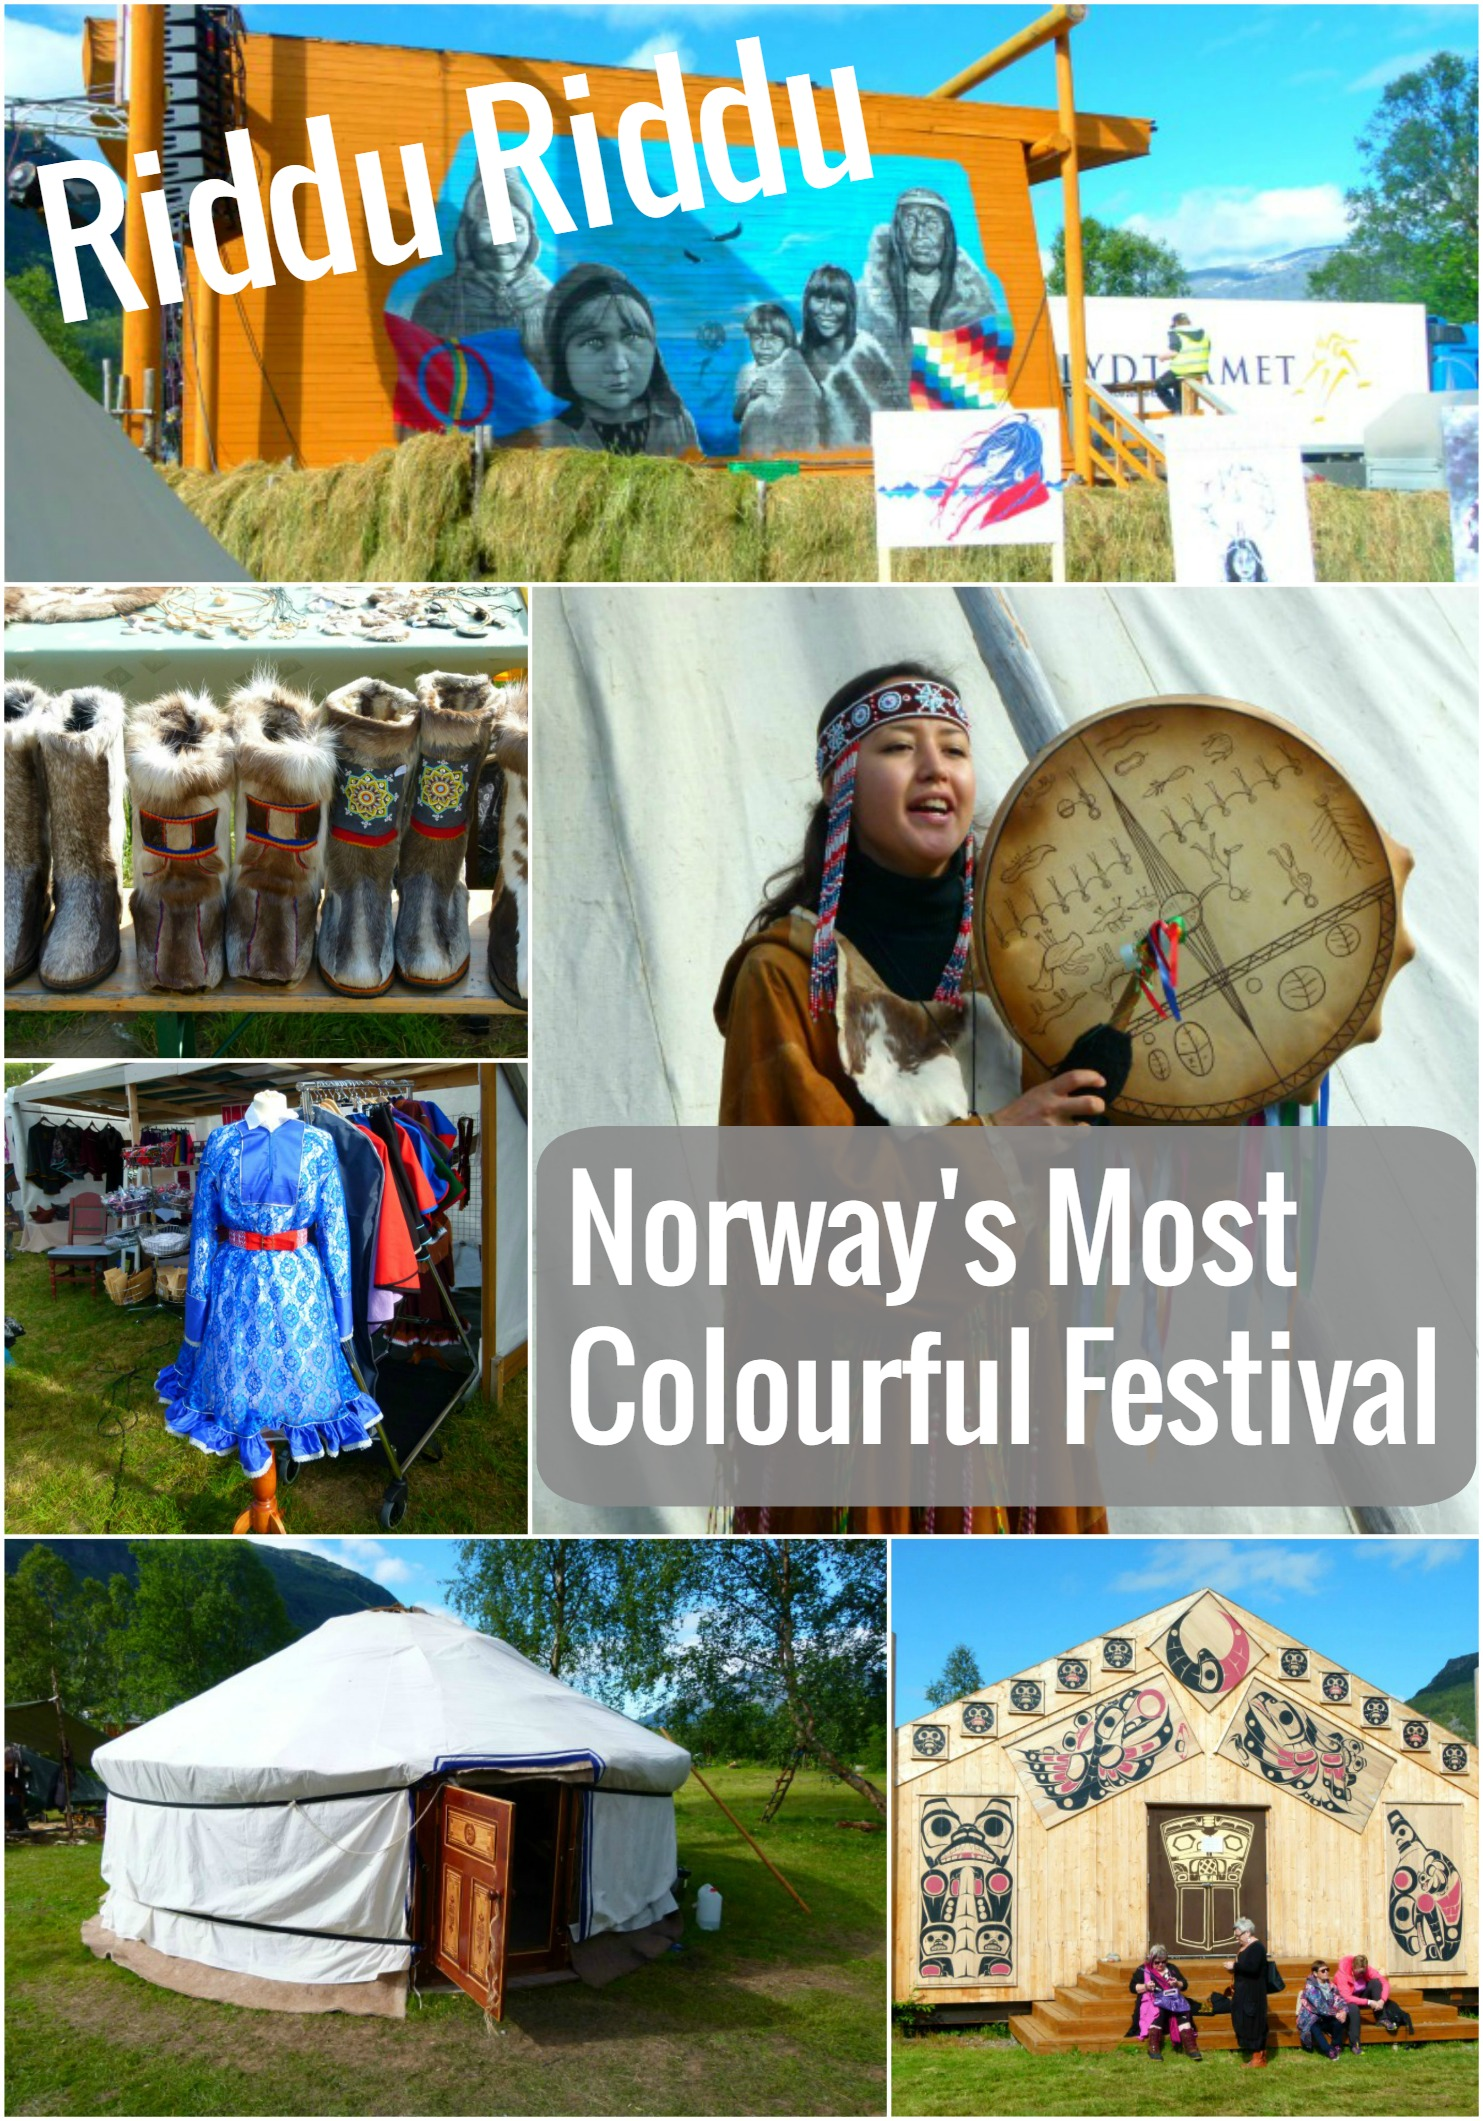 Riddu Riddu is probably Norway's most colourful festival! It takes place in a little town in the mountains of Northern Norway and you should definitely head there one summer!